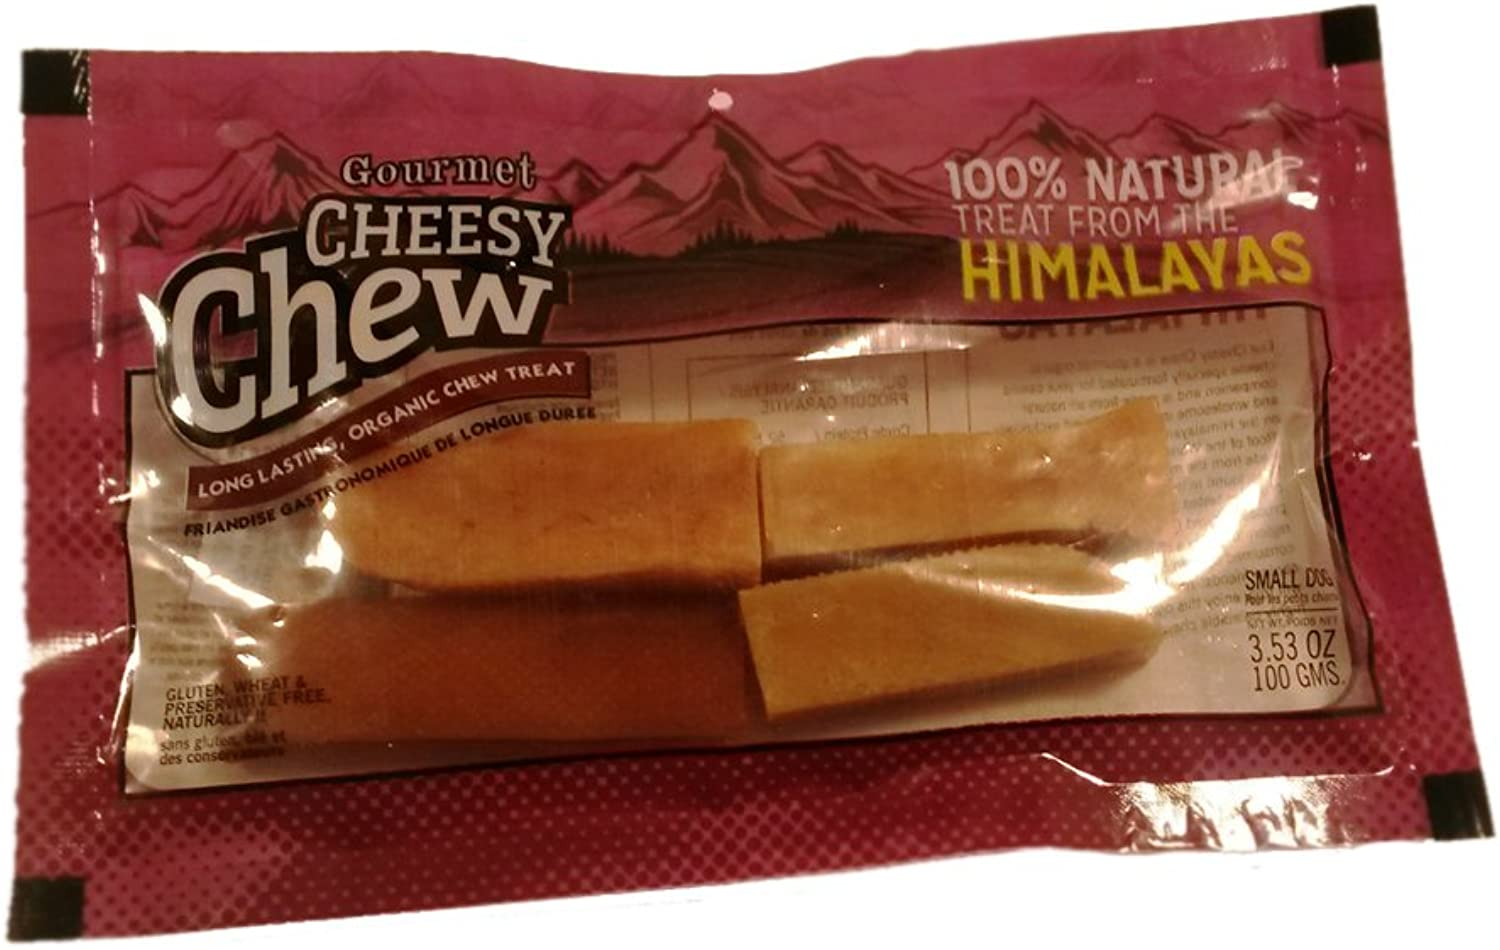 Advance Pet Products Himalayas Gourmet Cheesy Chews For Small Dogs, 3.58Ounce